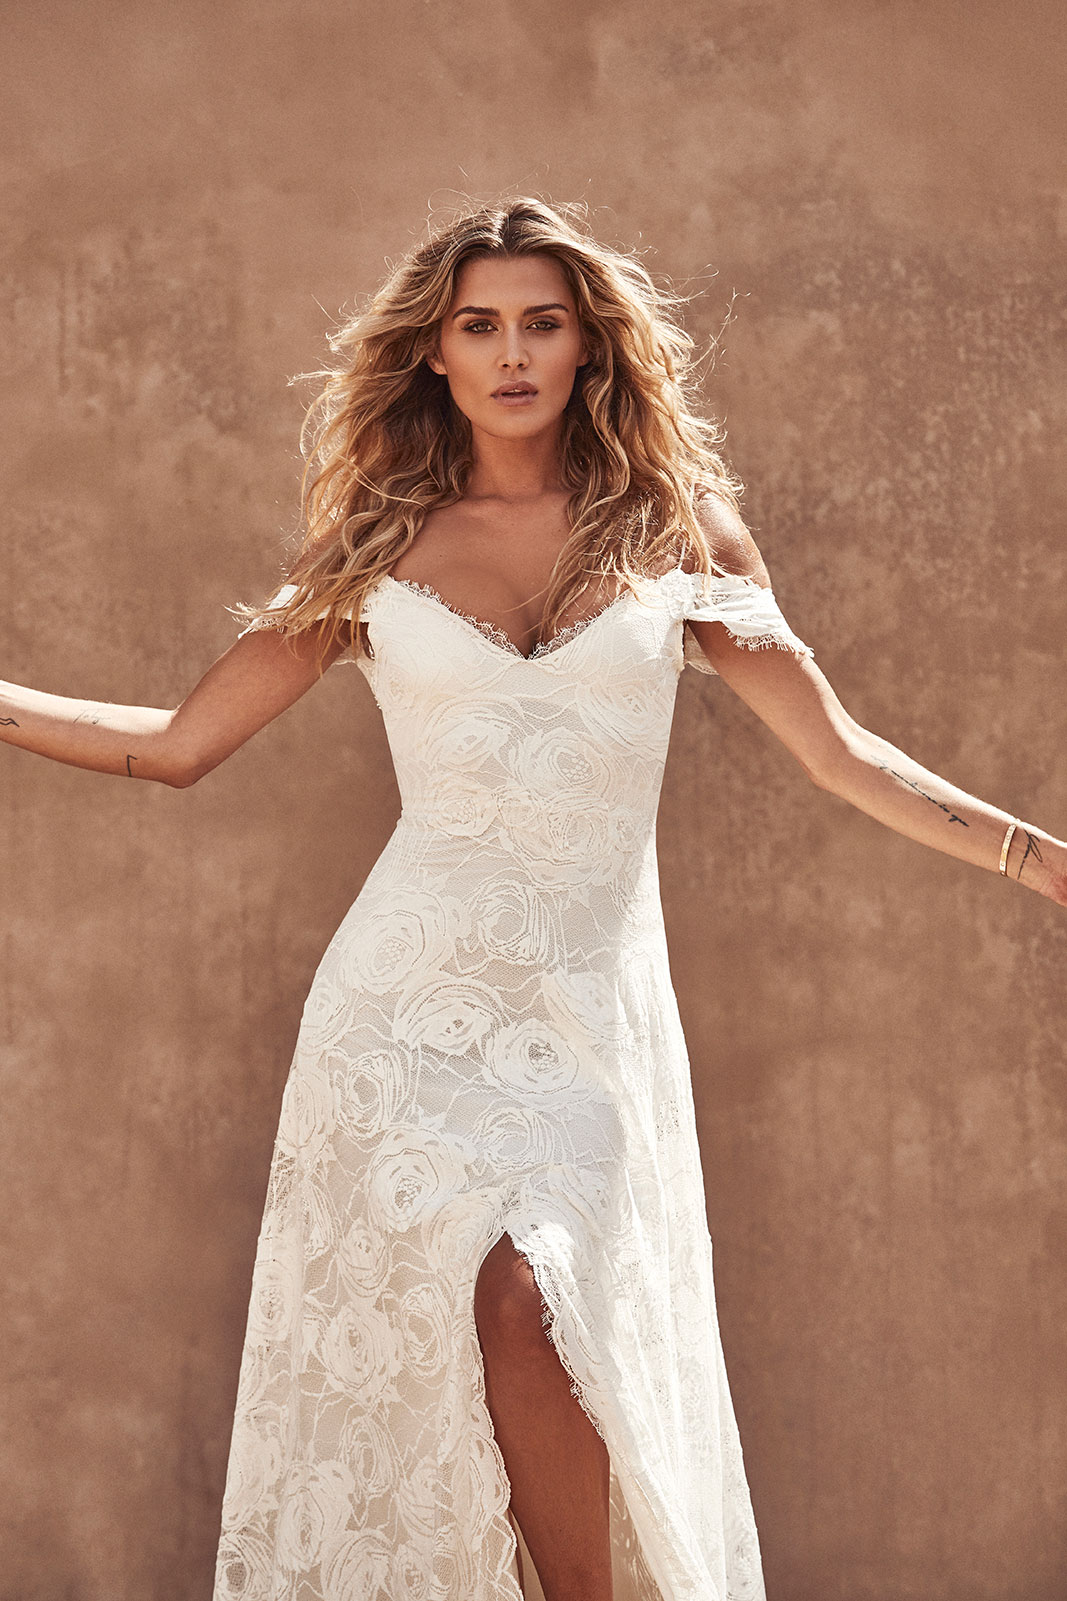 Bonita wedding dress by GRACE LOVES LACE | LOVE FIND CO. Bridal Dress Directory